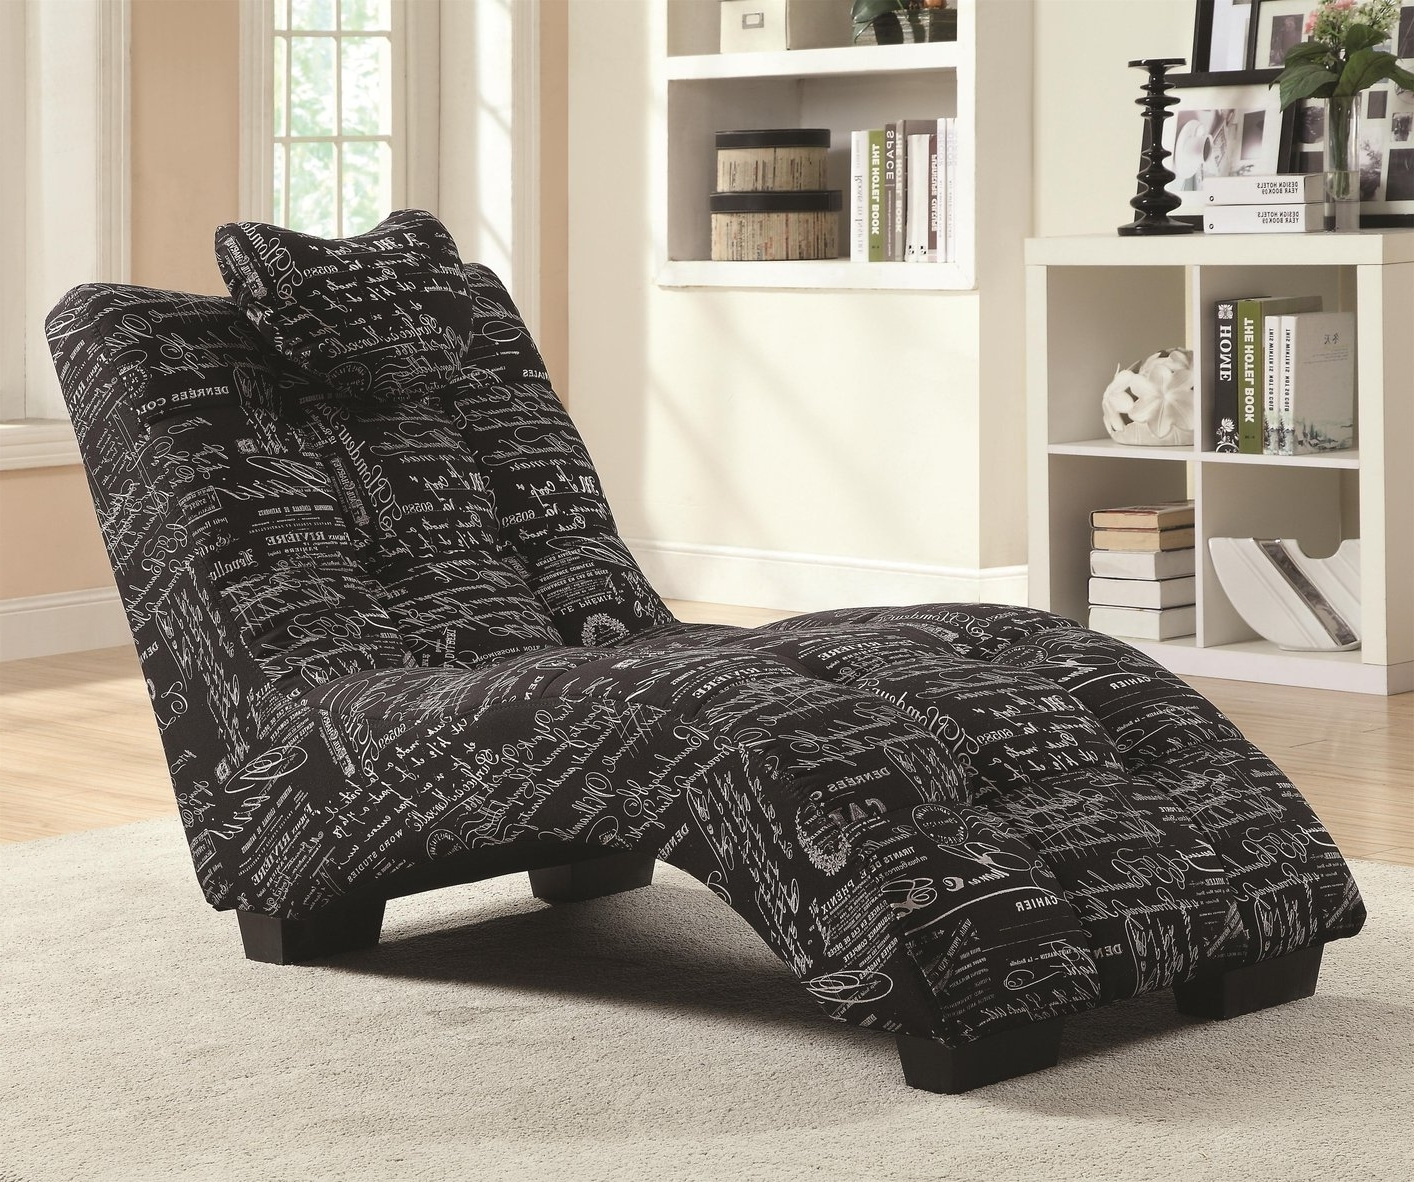 Popular Black Fabric Chaise Lounge – Steal A Sofa Furniture Outlet Los In Coaster Chaise Lounges (View 10 of 15)